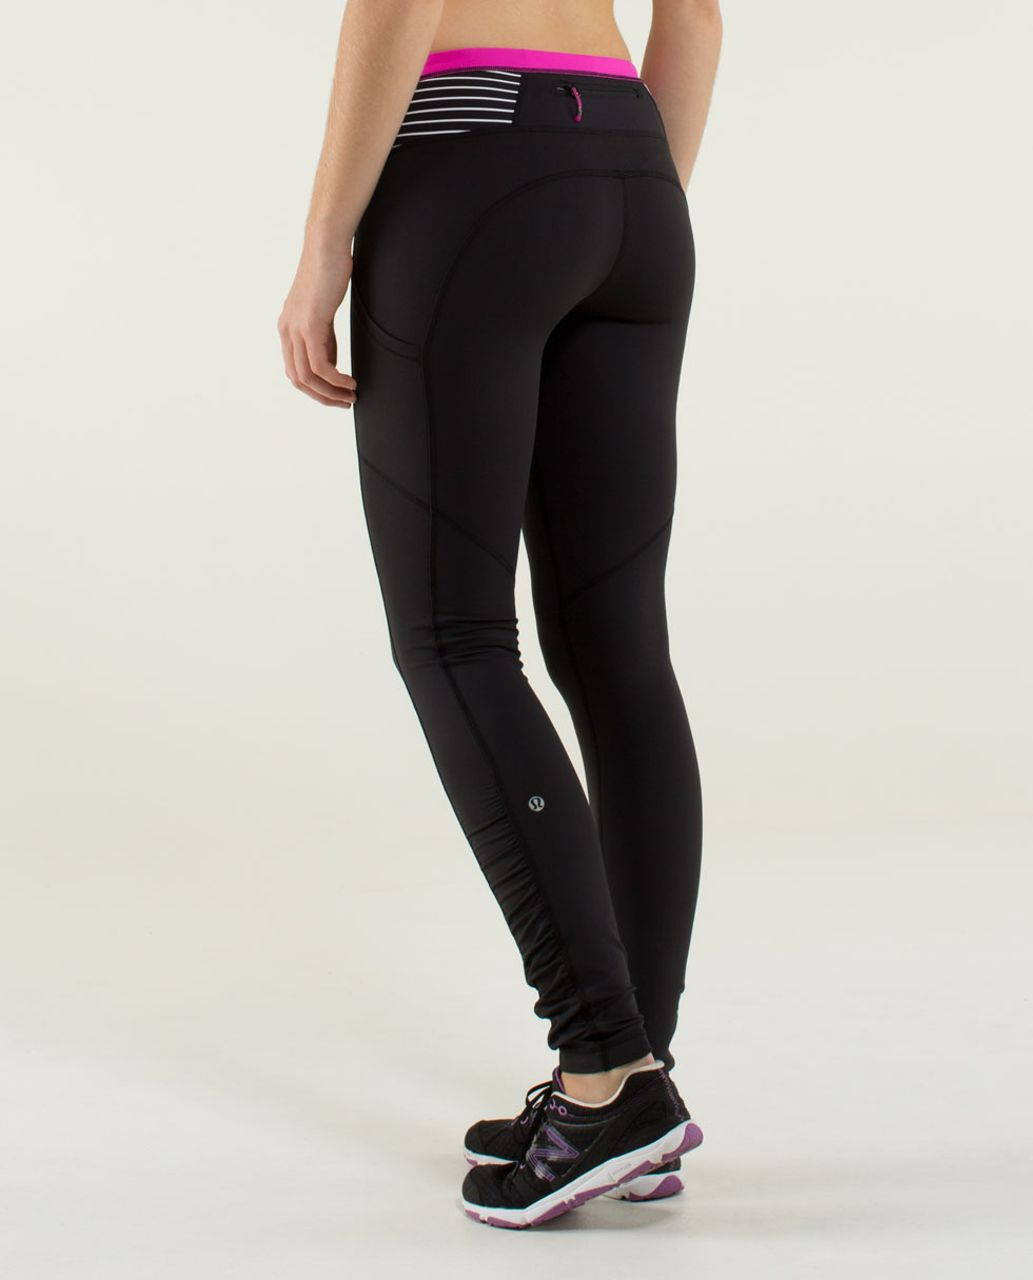 Lululemon Speed Tight *Brushed Interlock - Black / Quilt Winter 13-28